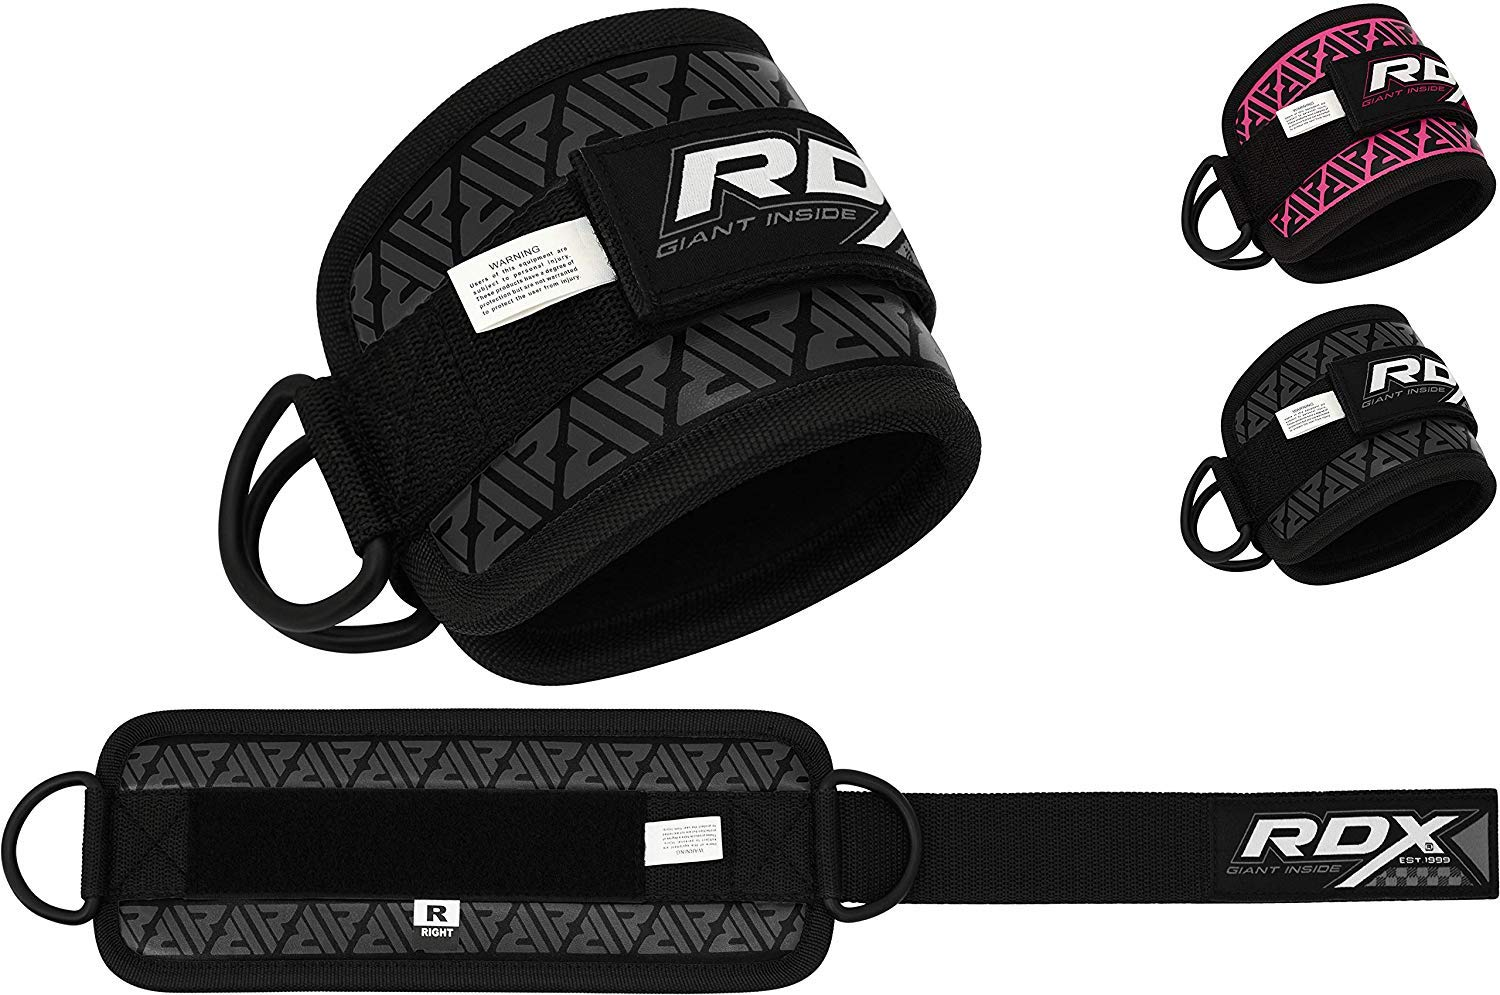 Steel Double D Ring Ankle Cuff Legs Workout Butt and Thigh Exercise- Maya Hide Leather Multi Gym Strap Pulley Attachment RDX Ankle Strap for Cable Machine Great for Glute